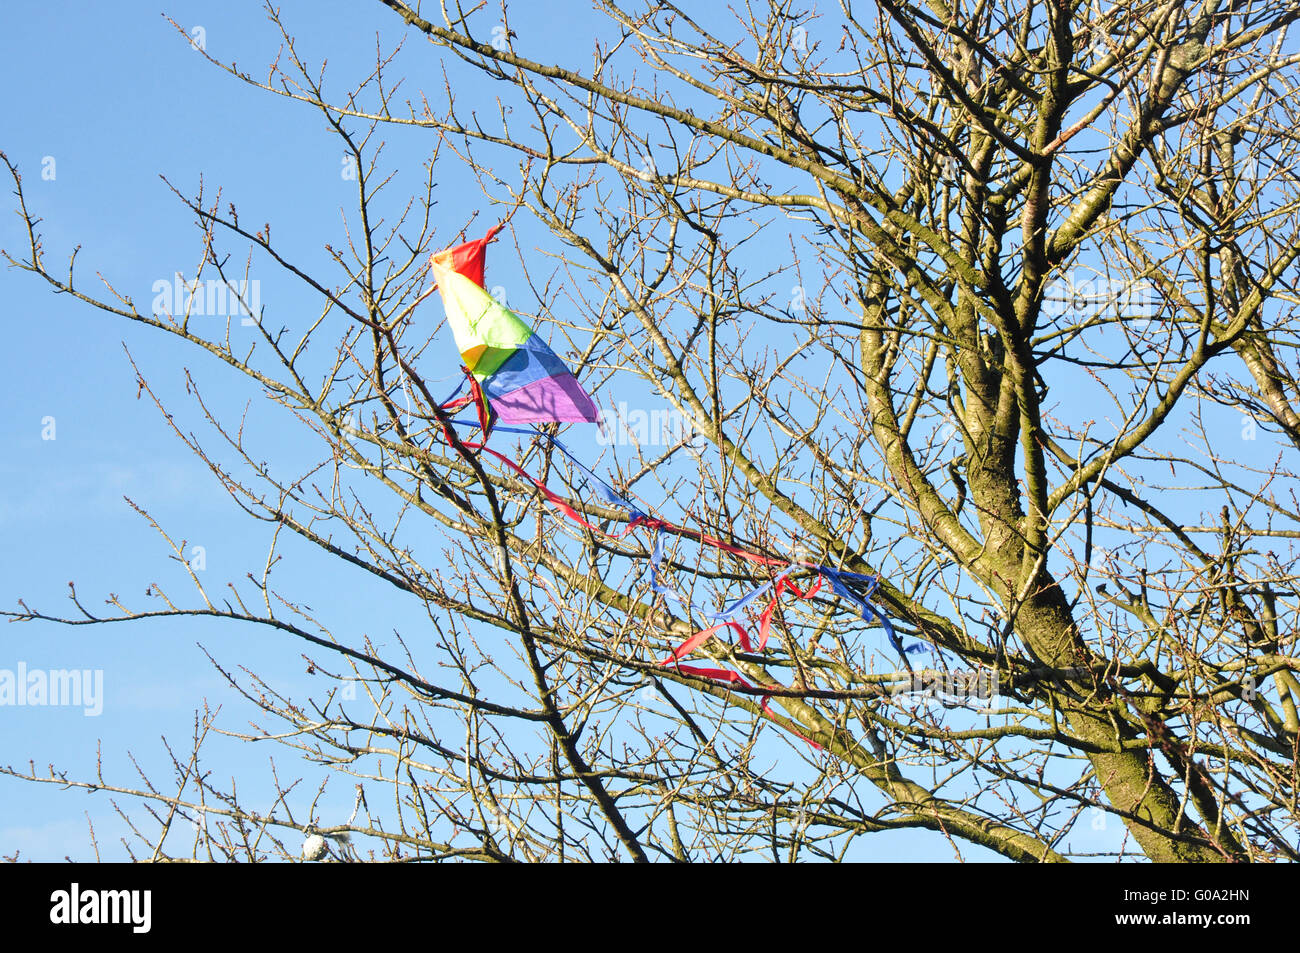 A tree top- early spring sunshine - a child's kite snagged - shaped by chance like a brilliant coloured bird - Stock Image